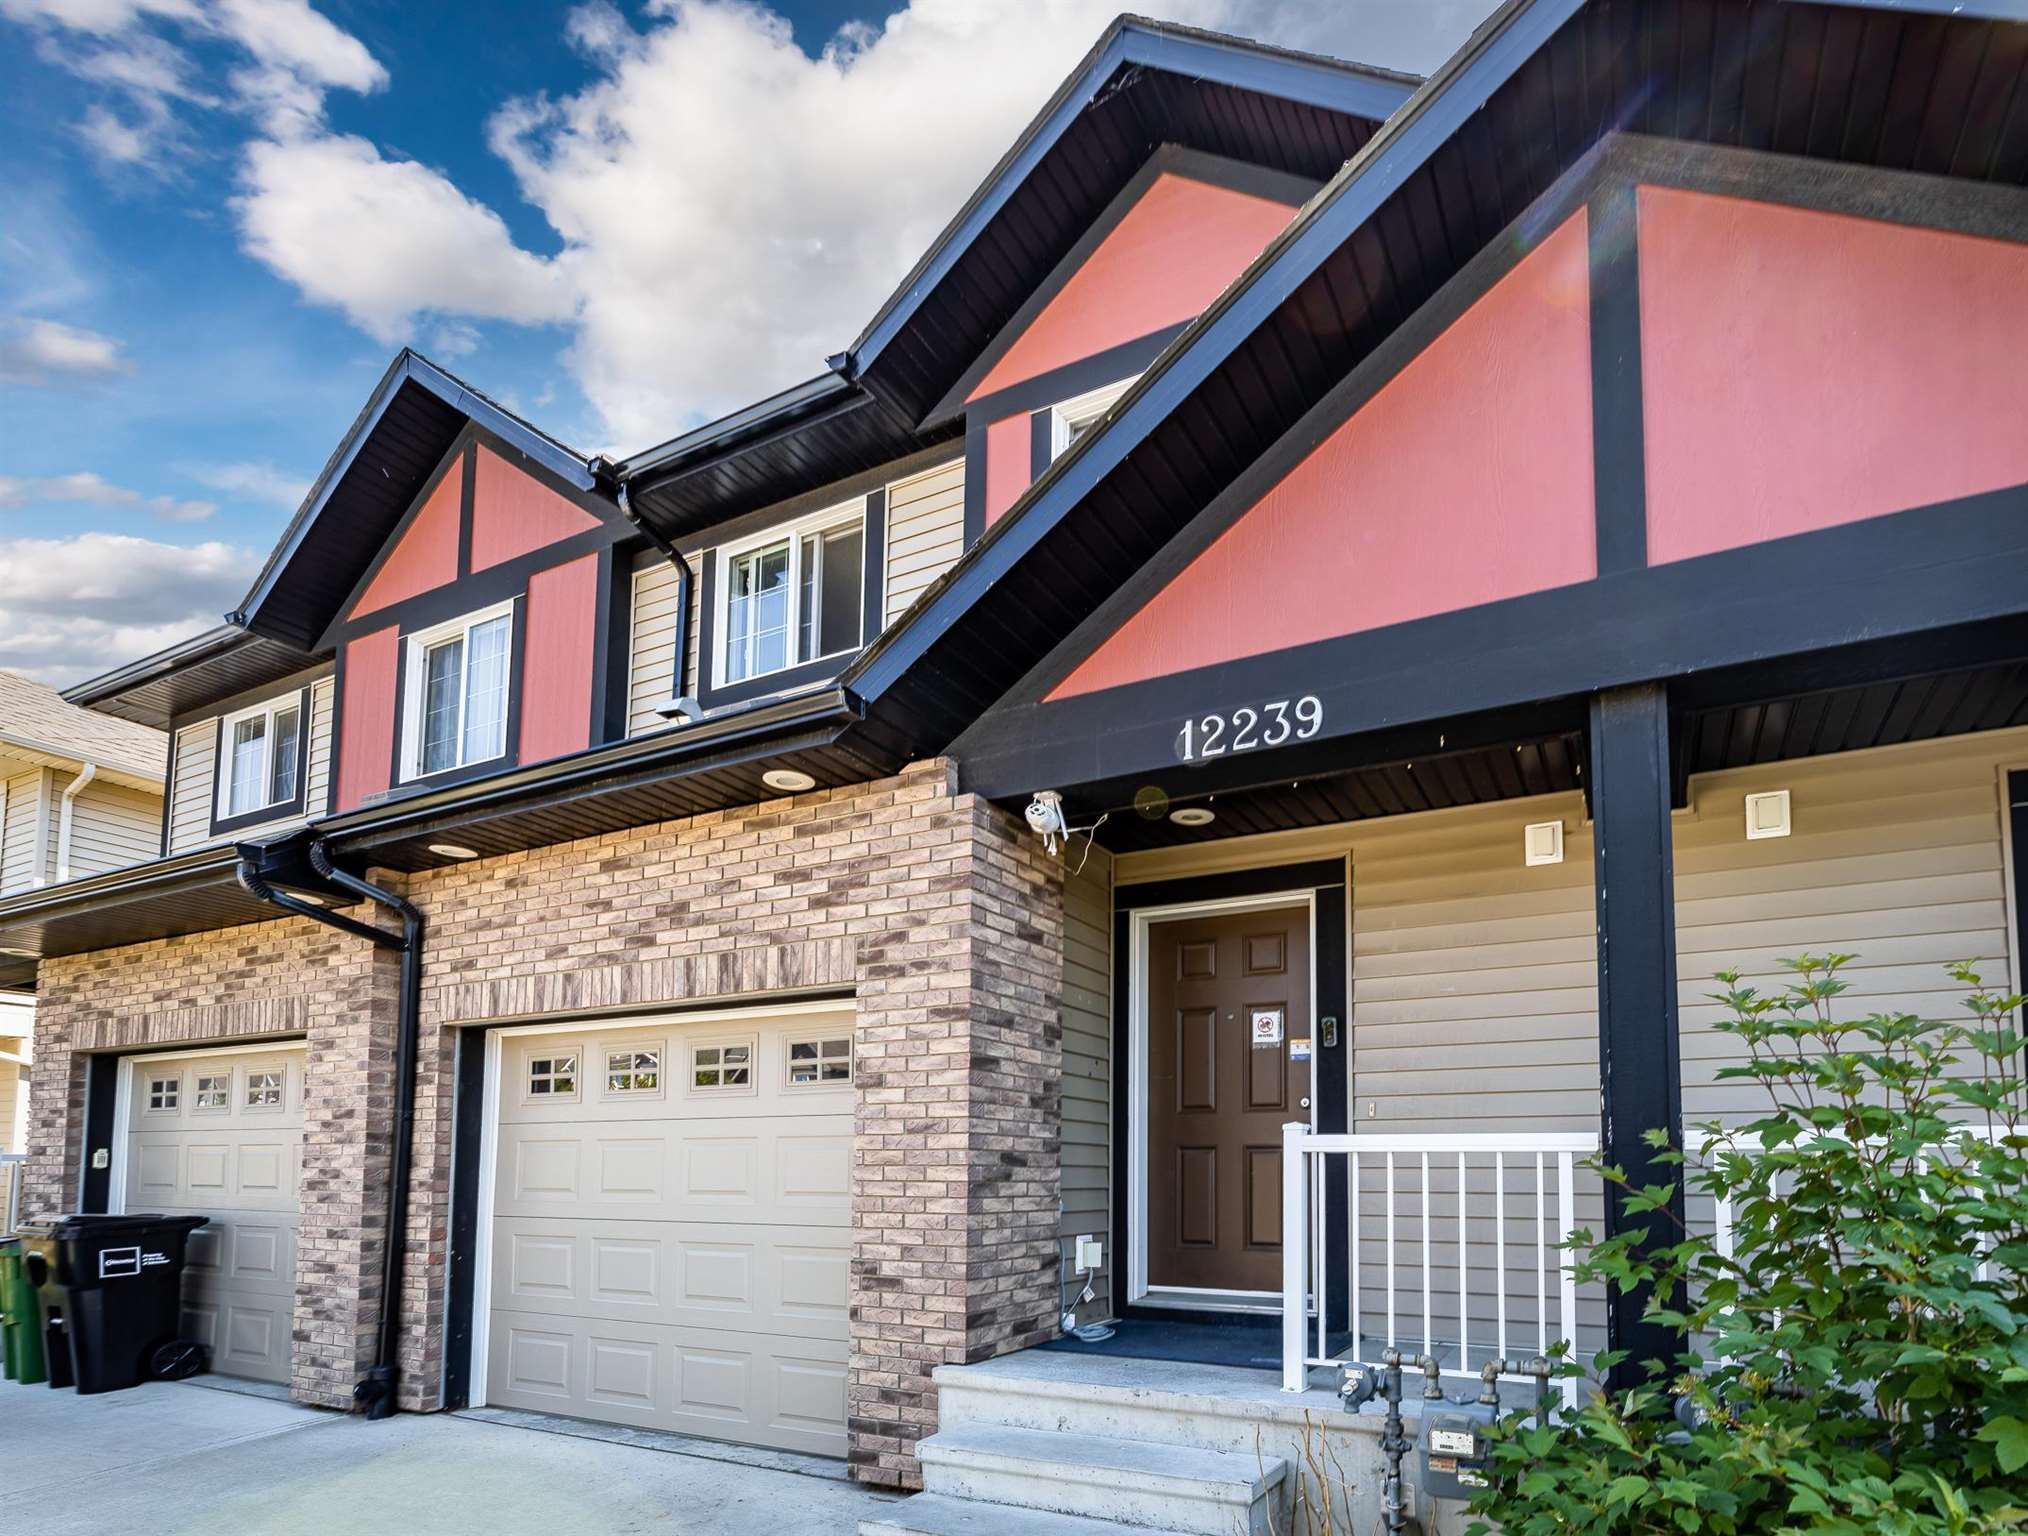 Stunning 1200+ sq ft townhome in the coveted community of Rapperswill with NO CONDO FEES - a perfect starter home for families! This is a Landmark Homes build and it shows with it's modern styling and open-concept main floor. Upon entry you'll be greeted by gleaming hardwood floors with a half-bath and staircase to the right. The main floor's spacious kitchen, living, and dining areas are connected and open up to a beautiful wooden deck and landscaped backyard. The kitchen also comes with granite countertops and stainless steel appliances. Upstairs you'll find a separate laundry room, 3 bedrooms, and 2 bathrooms. The primary bedroom comes with a walk-in closet and its own private ensuite. The sunny south-facing backyard is fully fenced and features a deck for those Summer nights. Fantastic location close to shopping and amenities along 127th, with easy access to the Henday.